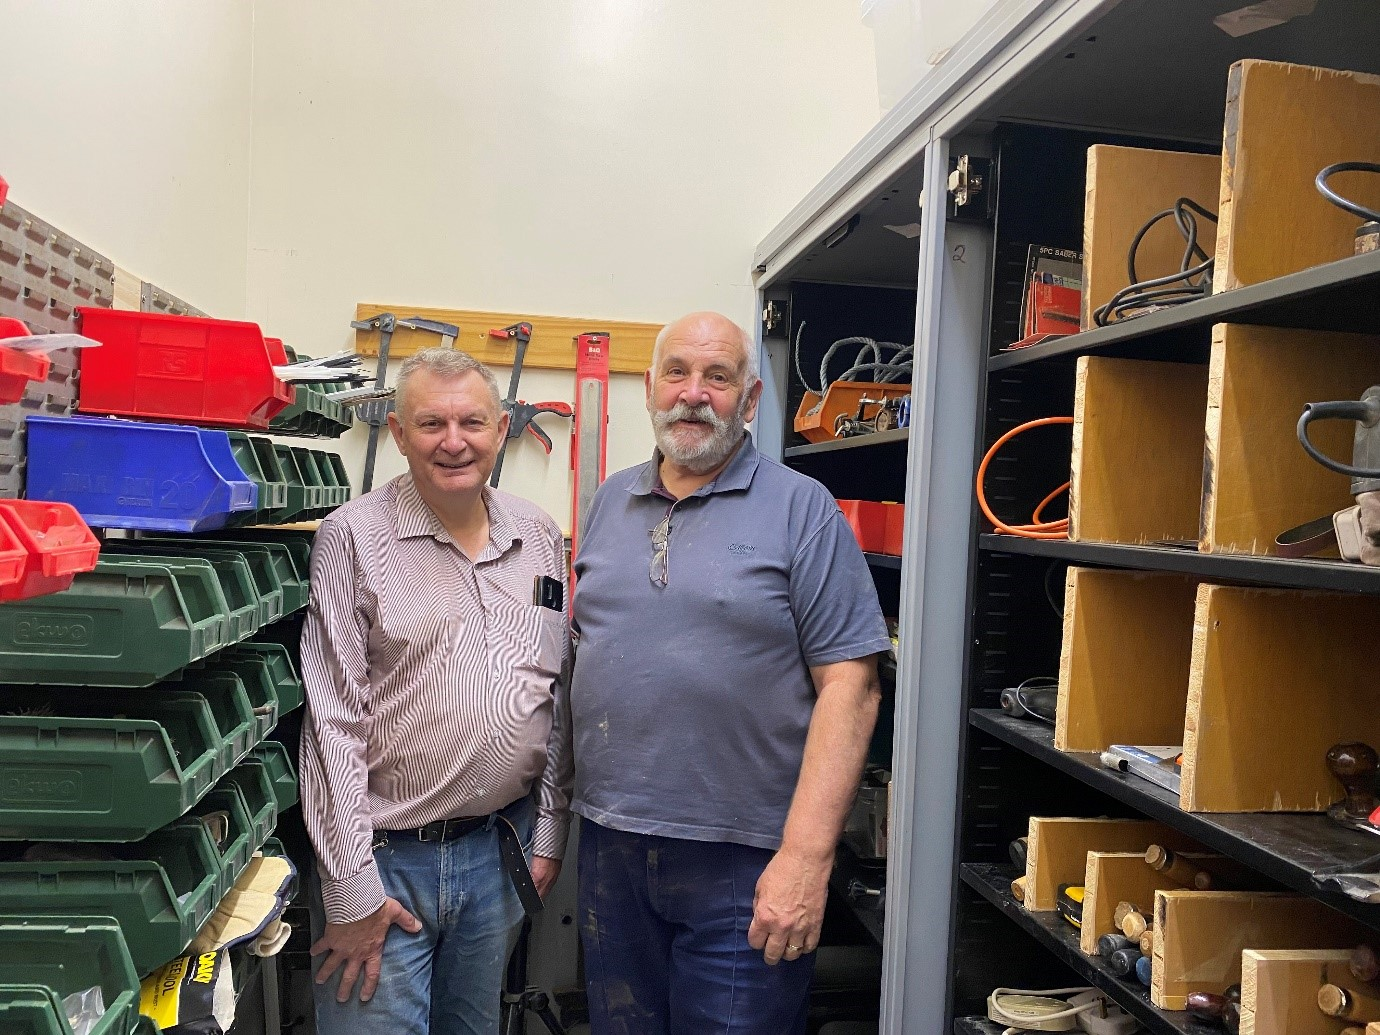 Eildon donates excess office furniture  to Hawick Men's Shed